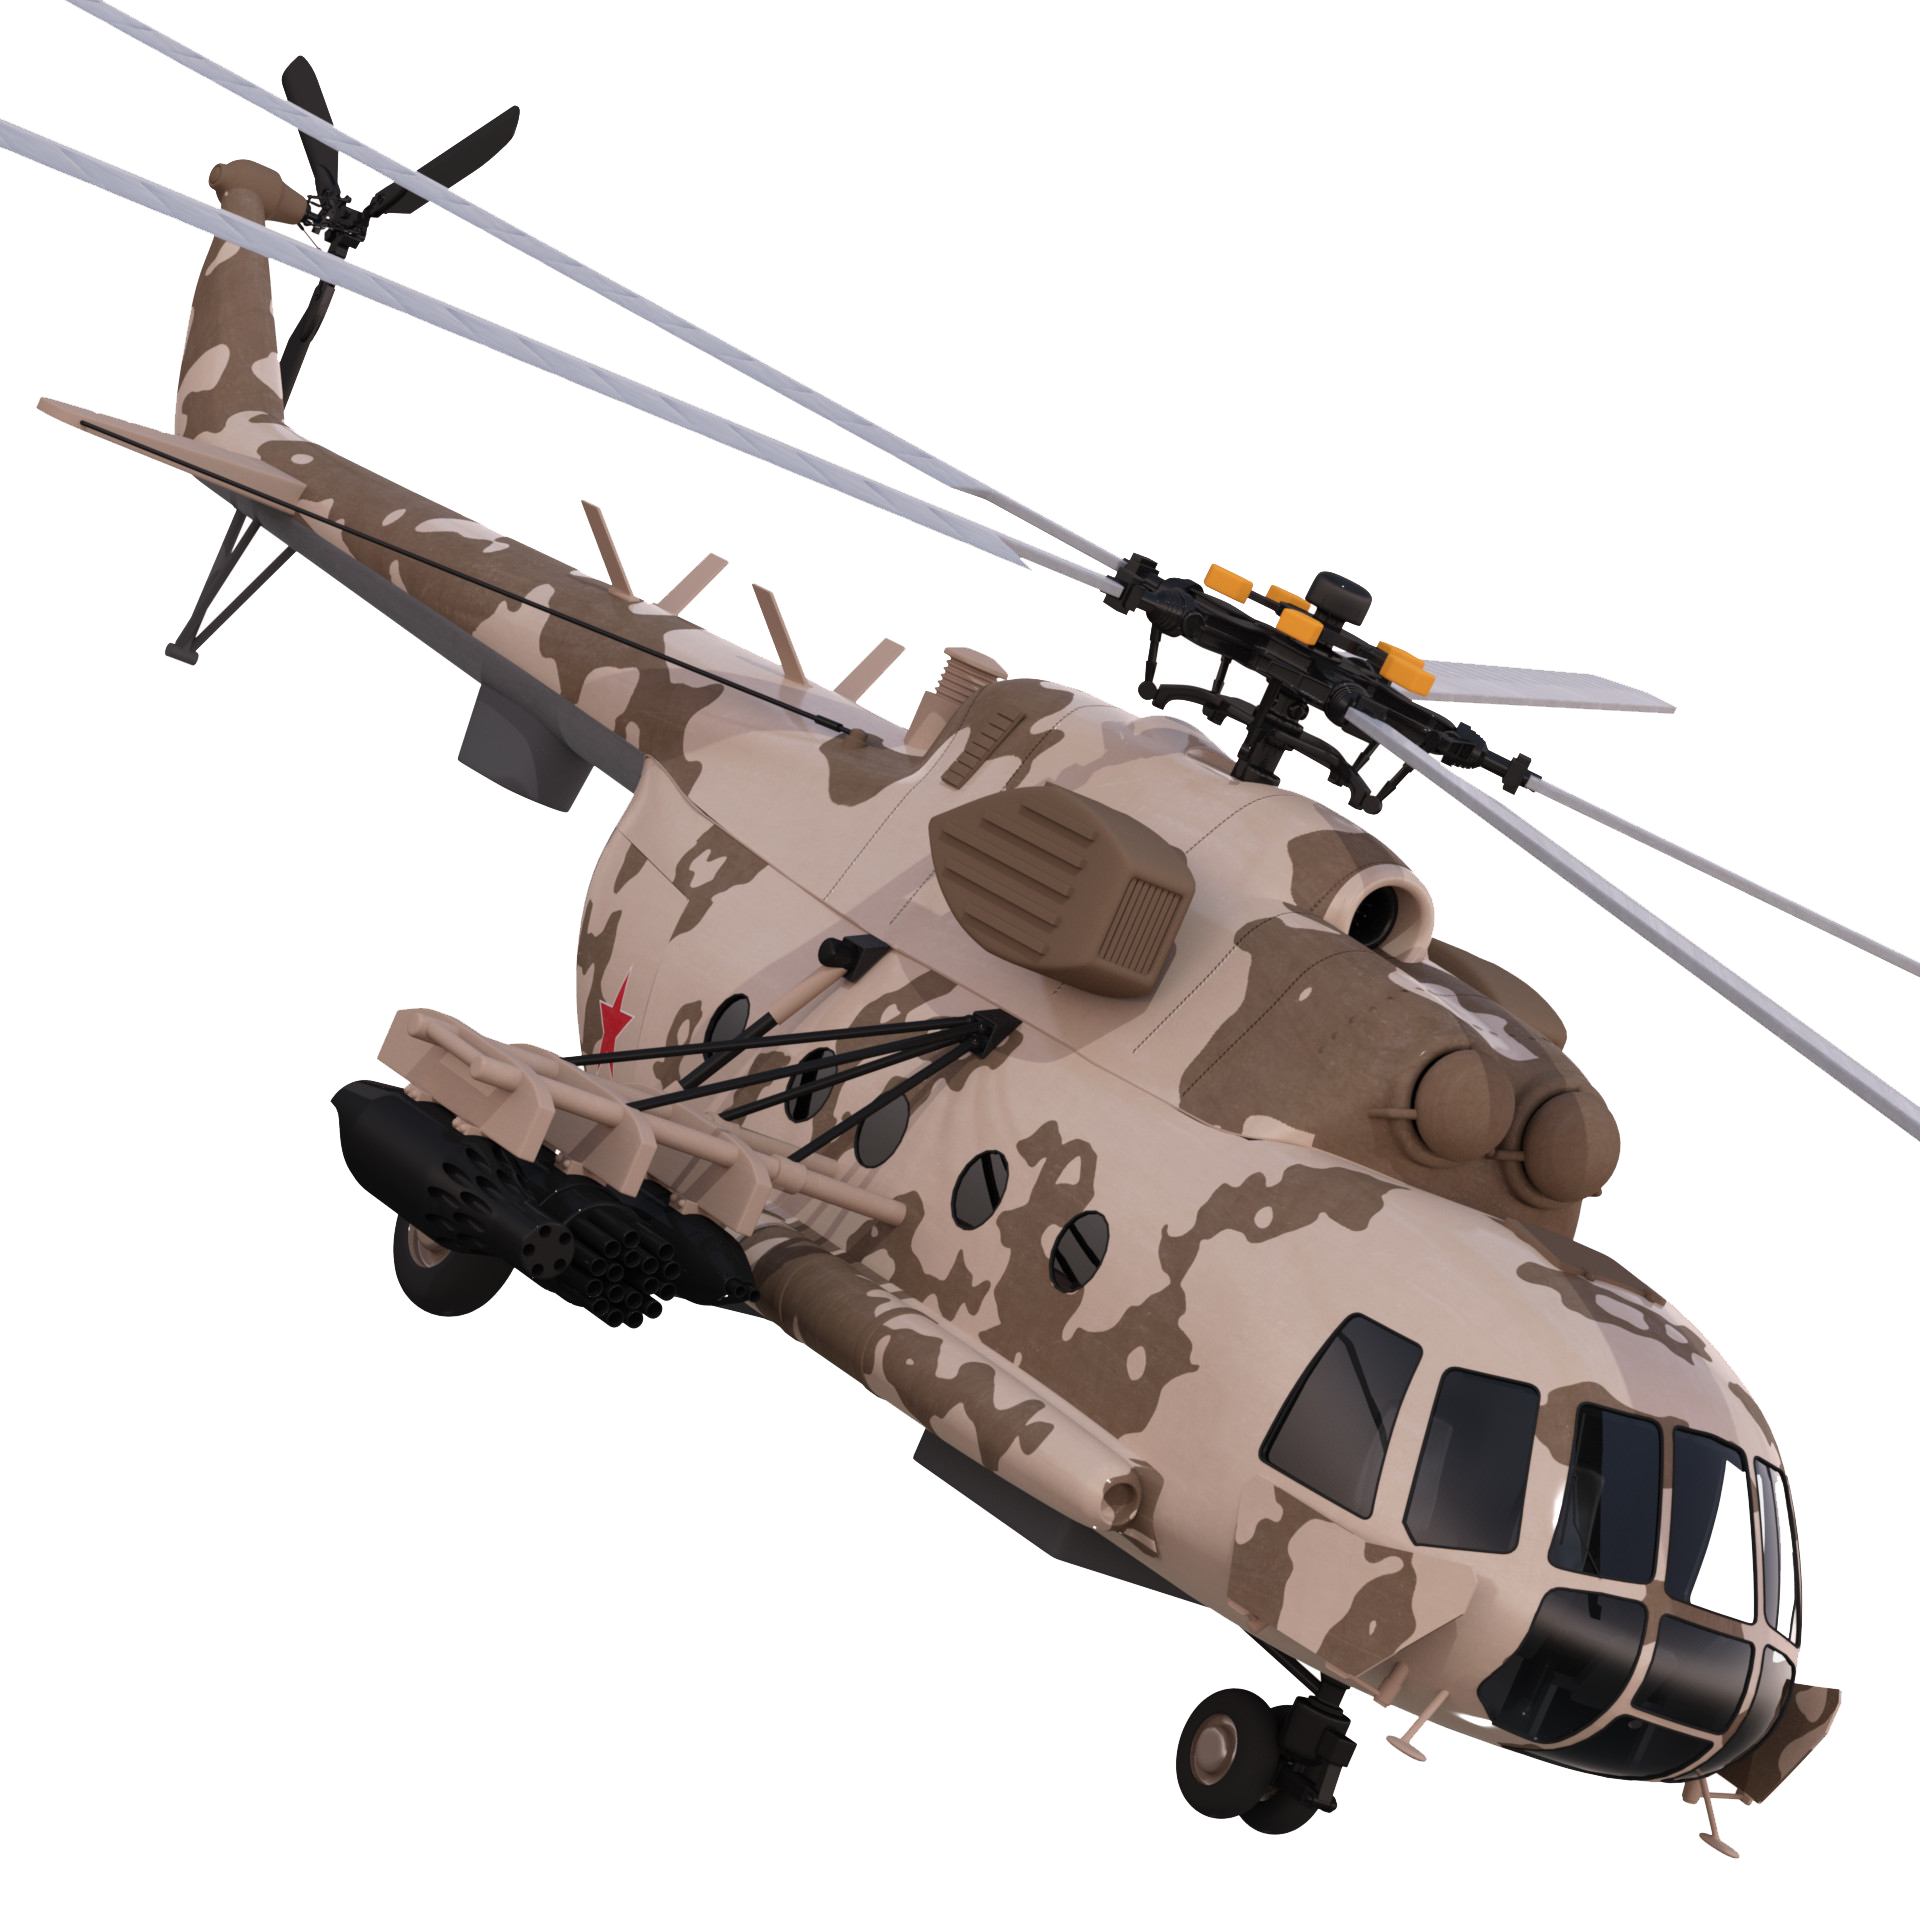 Helicopter Png Hd PNG Image - Helicopter HD PNG